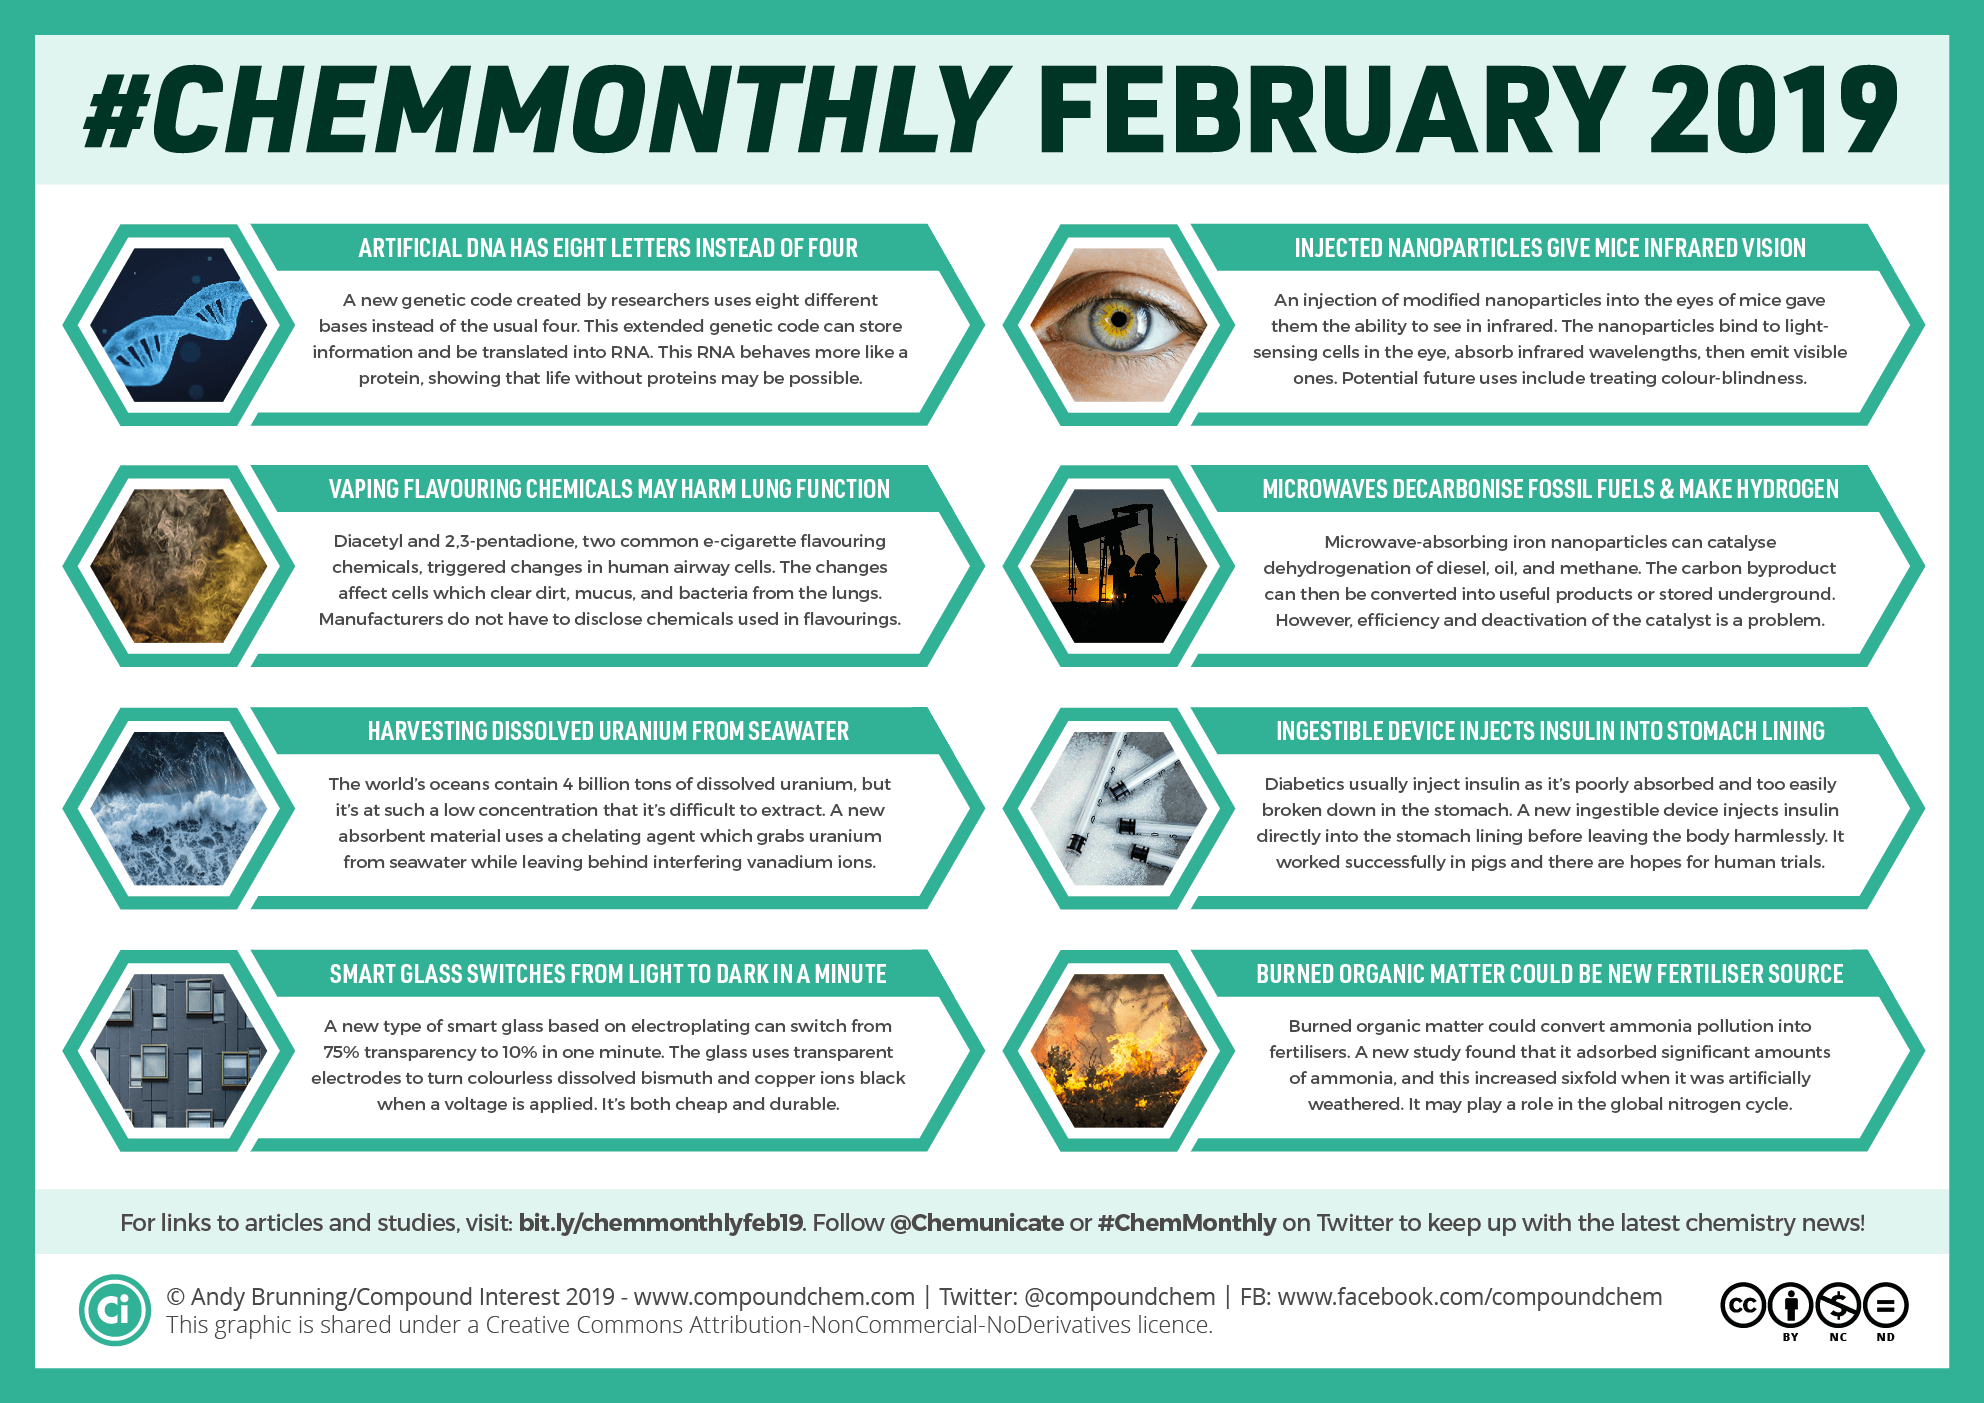 #ChemMonthly February 2019: Eight letter DNA, uranium from seawater, and infrared vision with nanoparticles